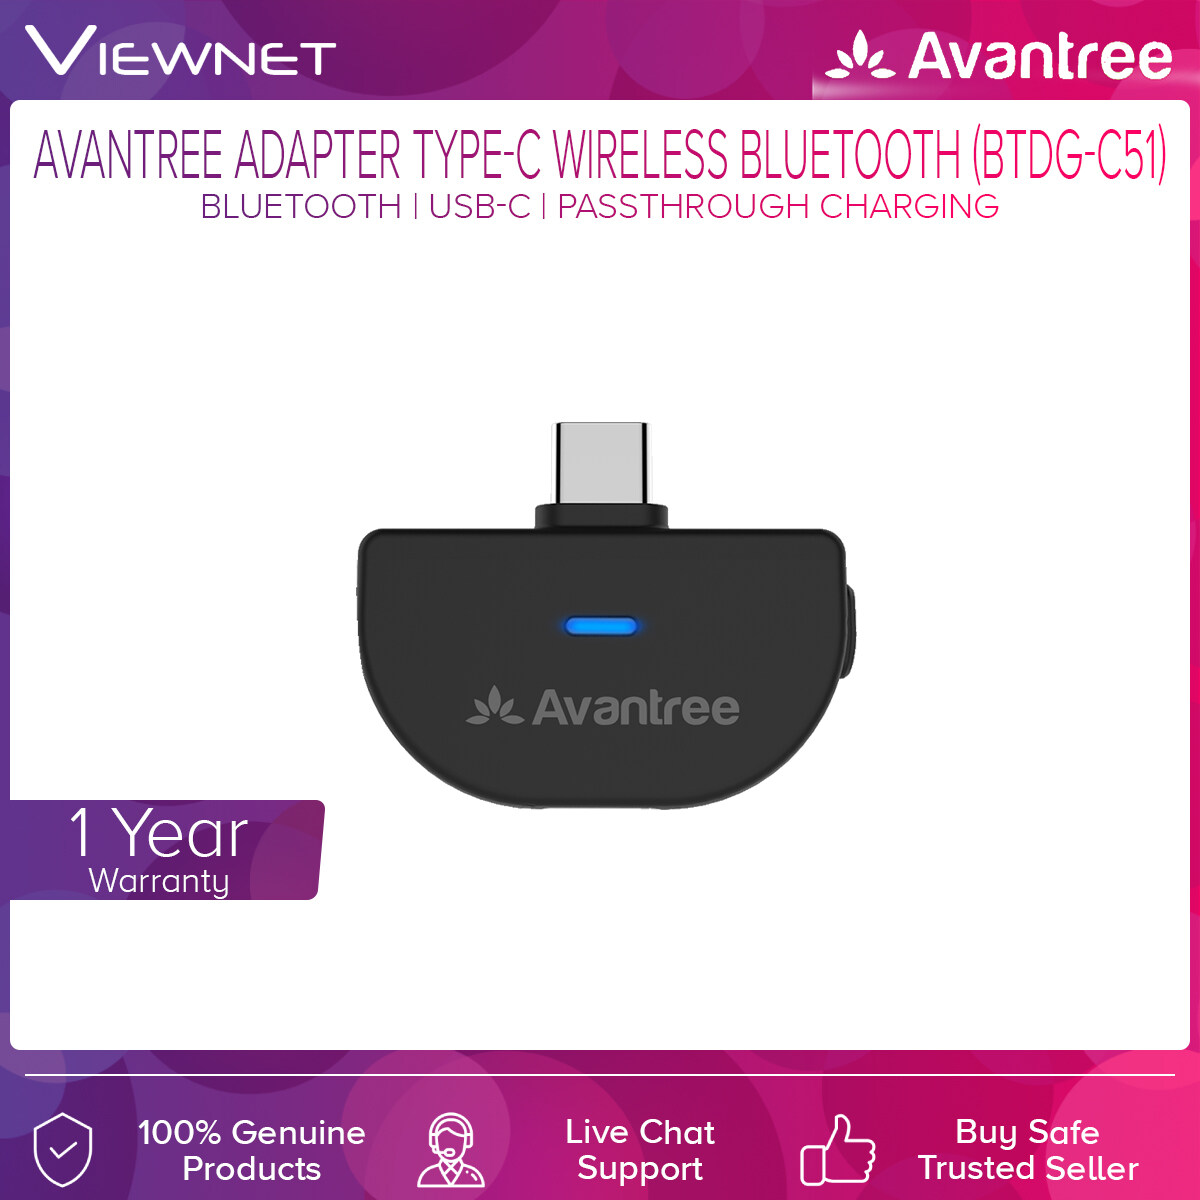 Avantree Adapter Type-C Wireless Bluetooth (BTDG-C51) with Audio Transmitter, No Lip Sync Delay, Passthrough charging, Bluetooth enable